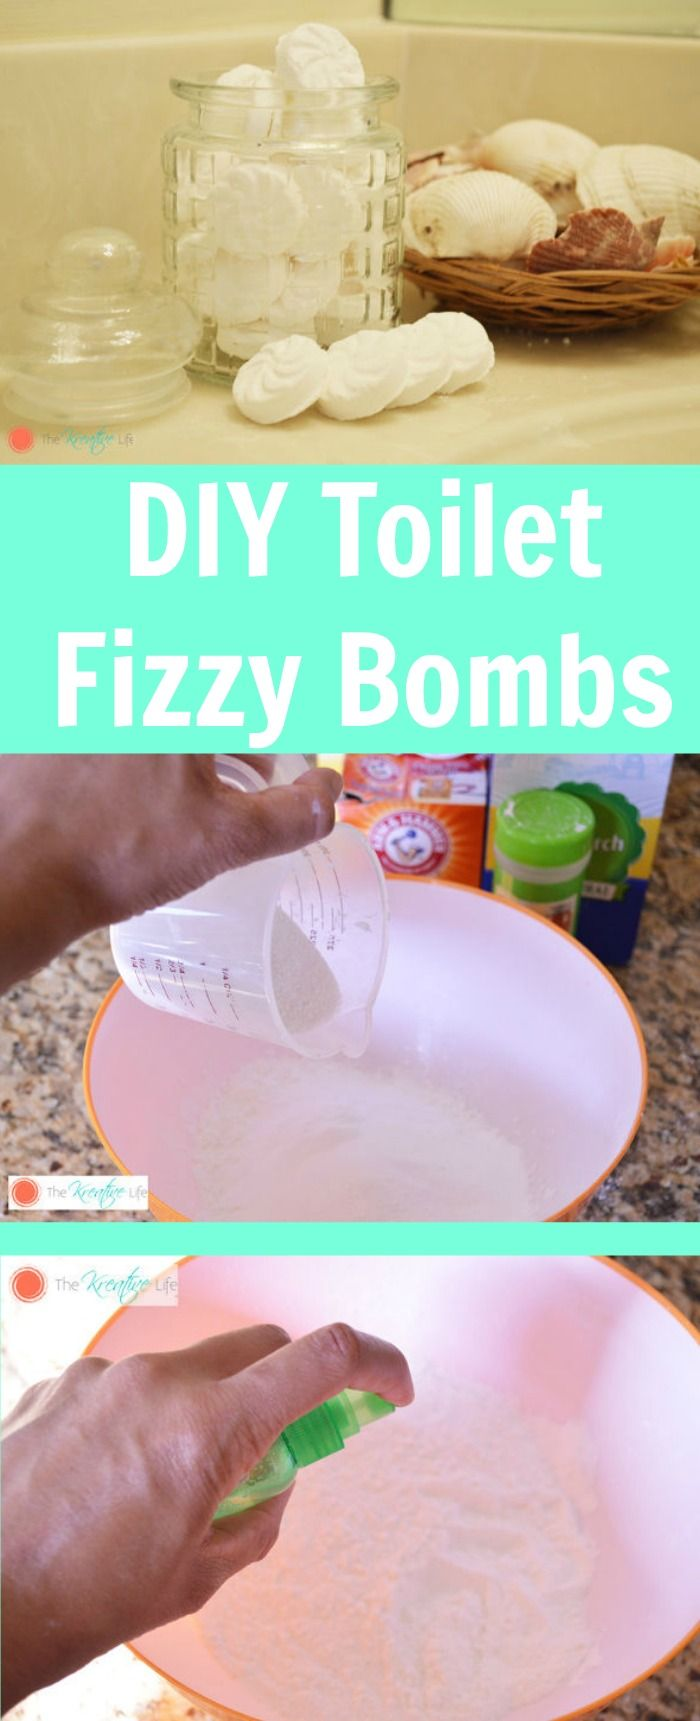 15 best images about health on pinterest toilets cupcake bath bombs and homemade - Diy toilet cleaning bombs ...